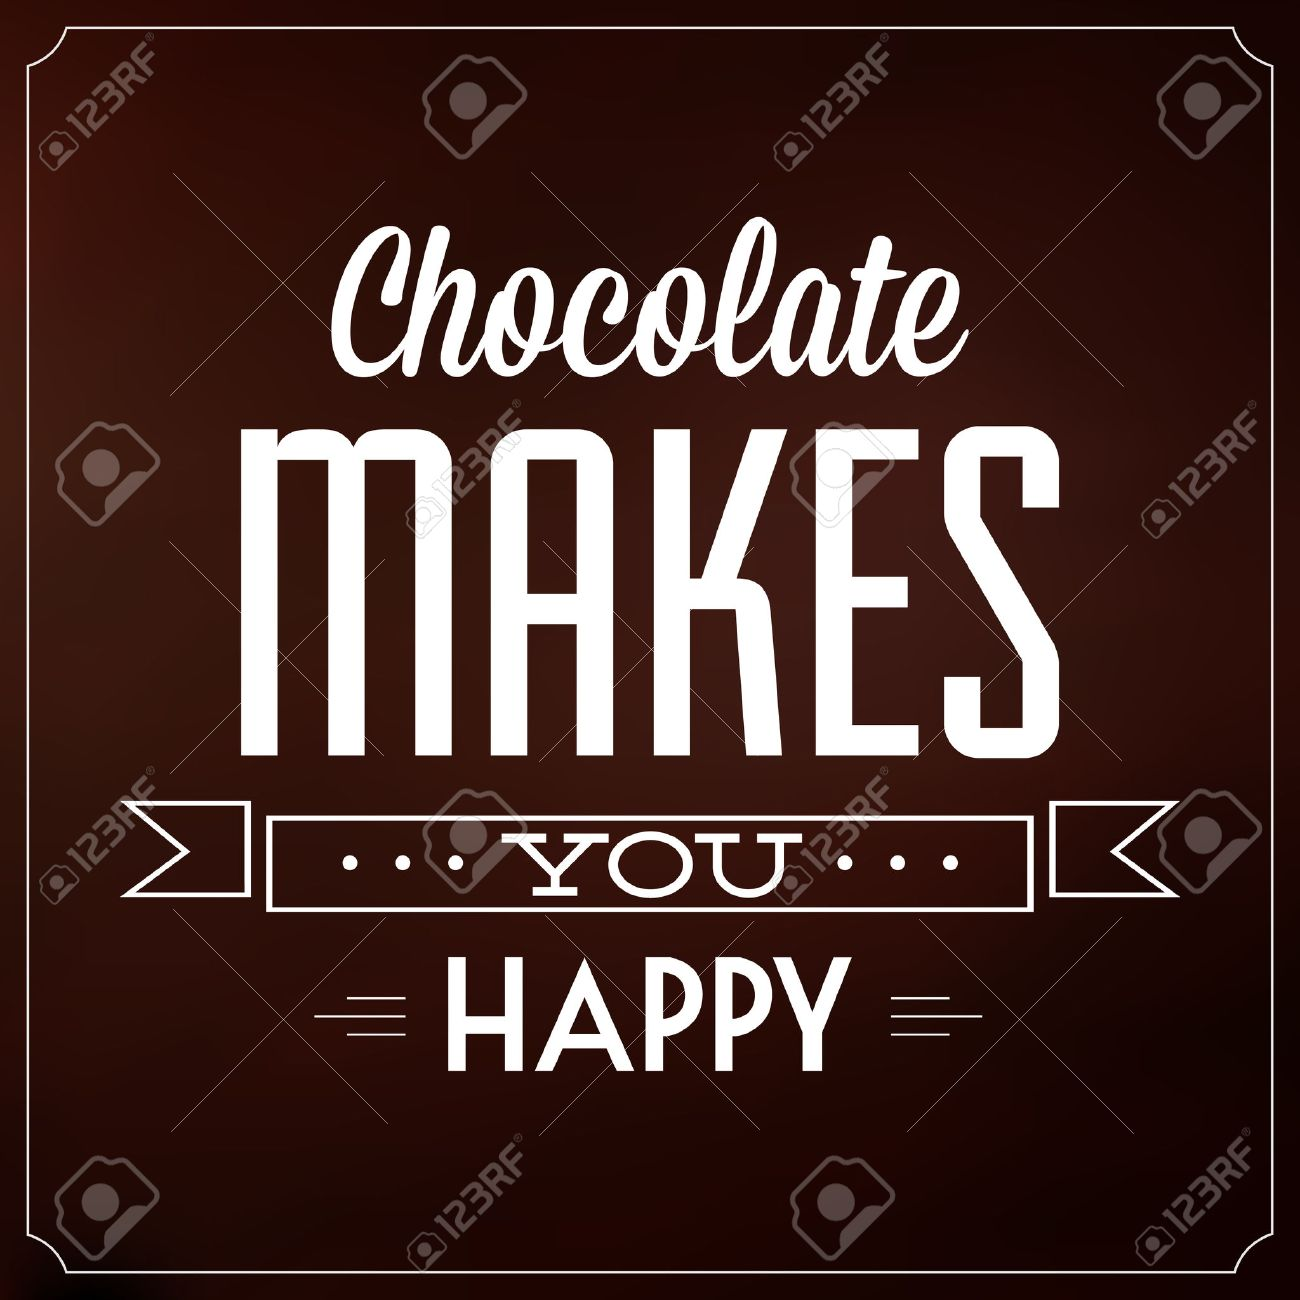 Chocolate Makes You Happy   Quote Typographic Background Design Stock Vector - 22855991